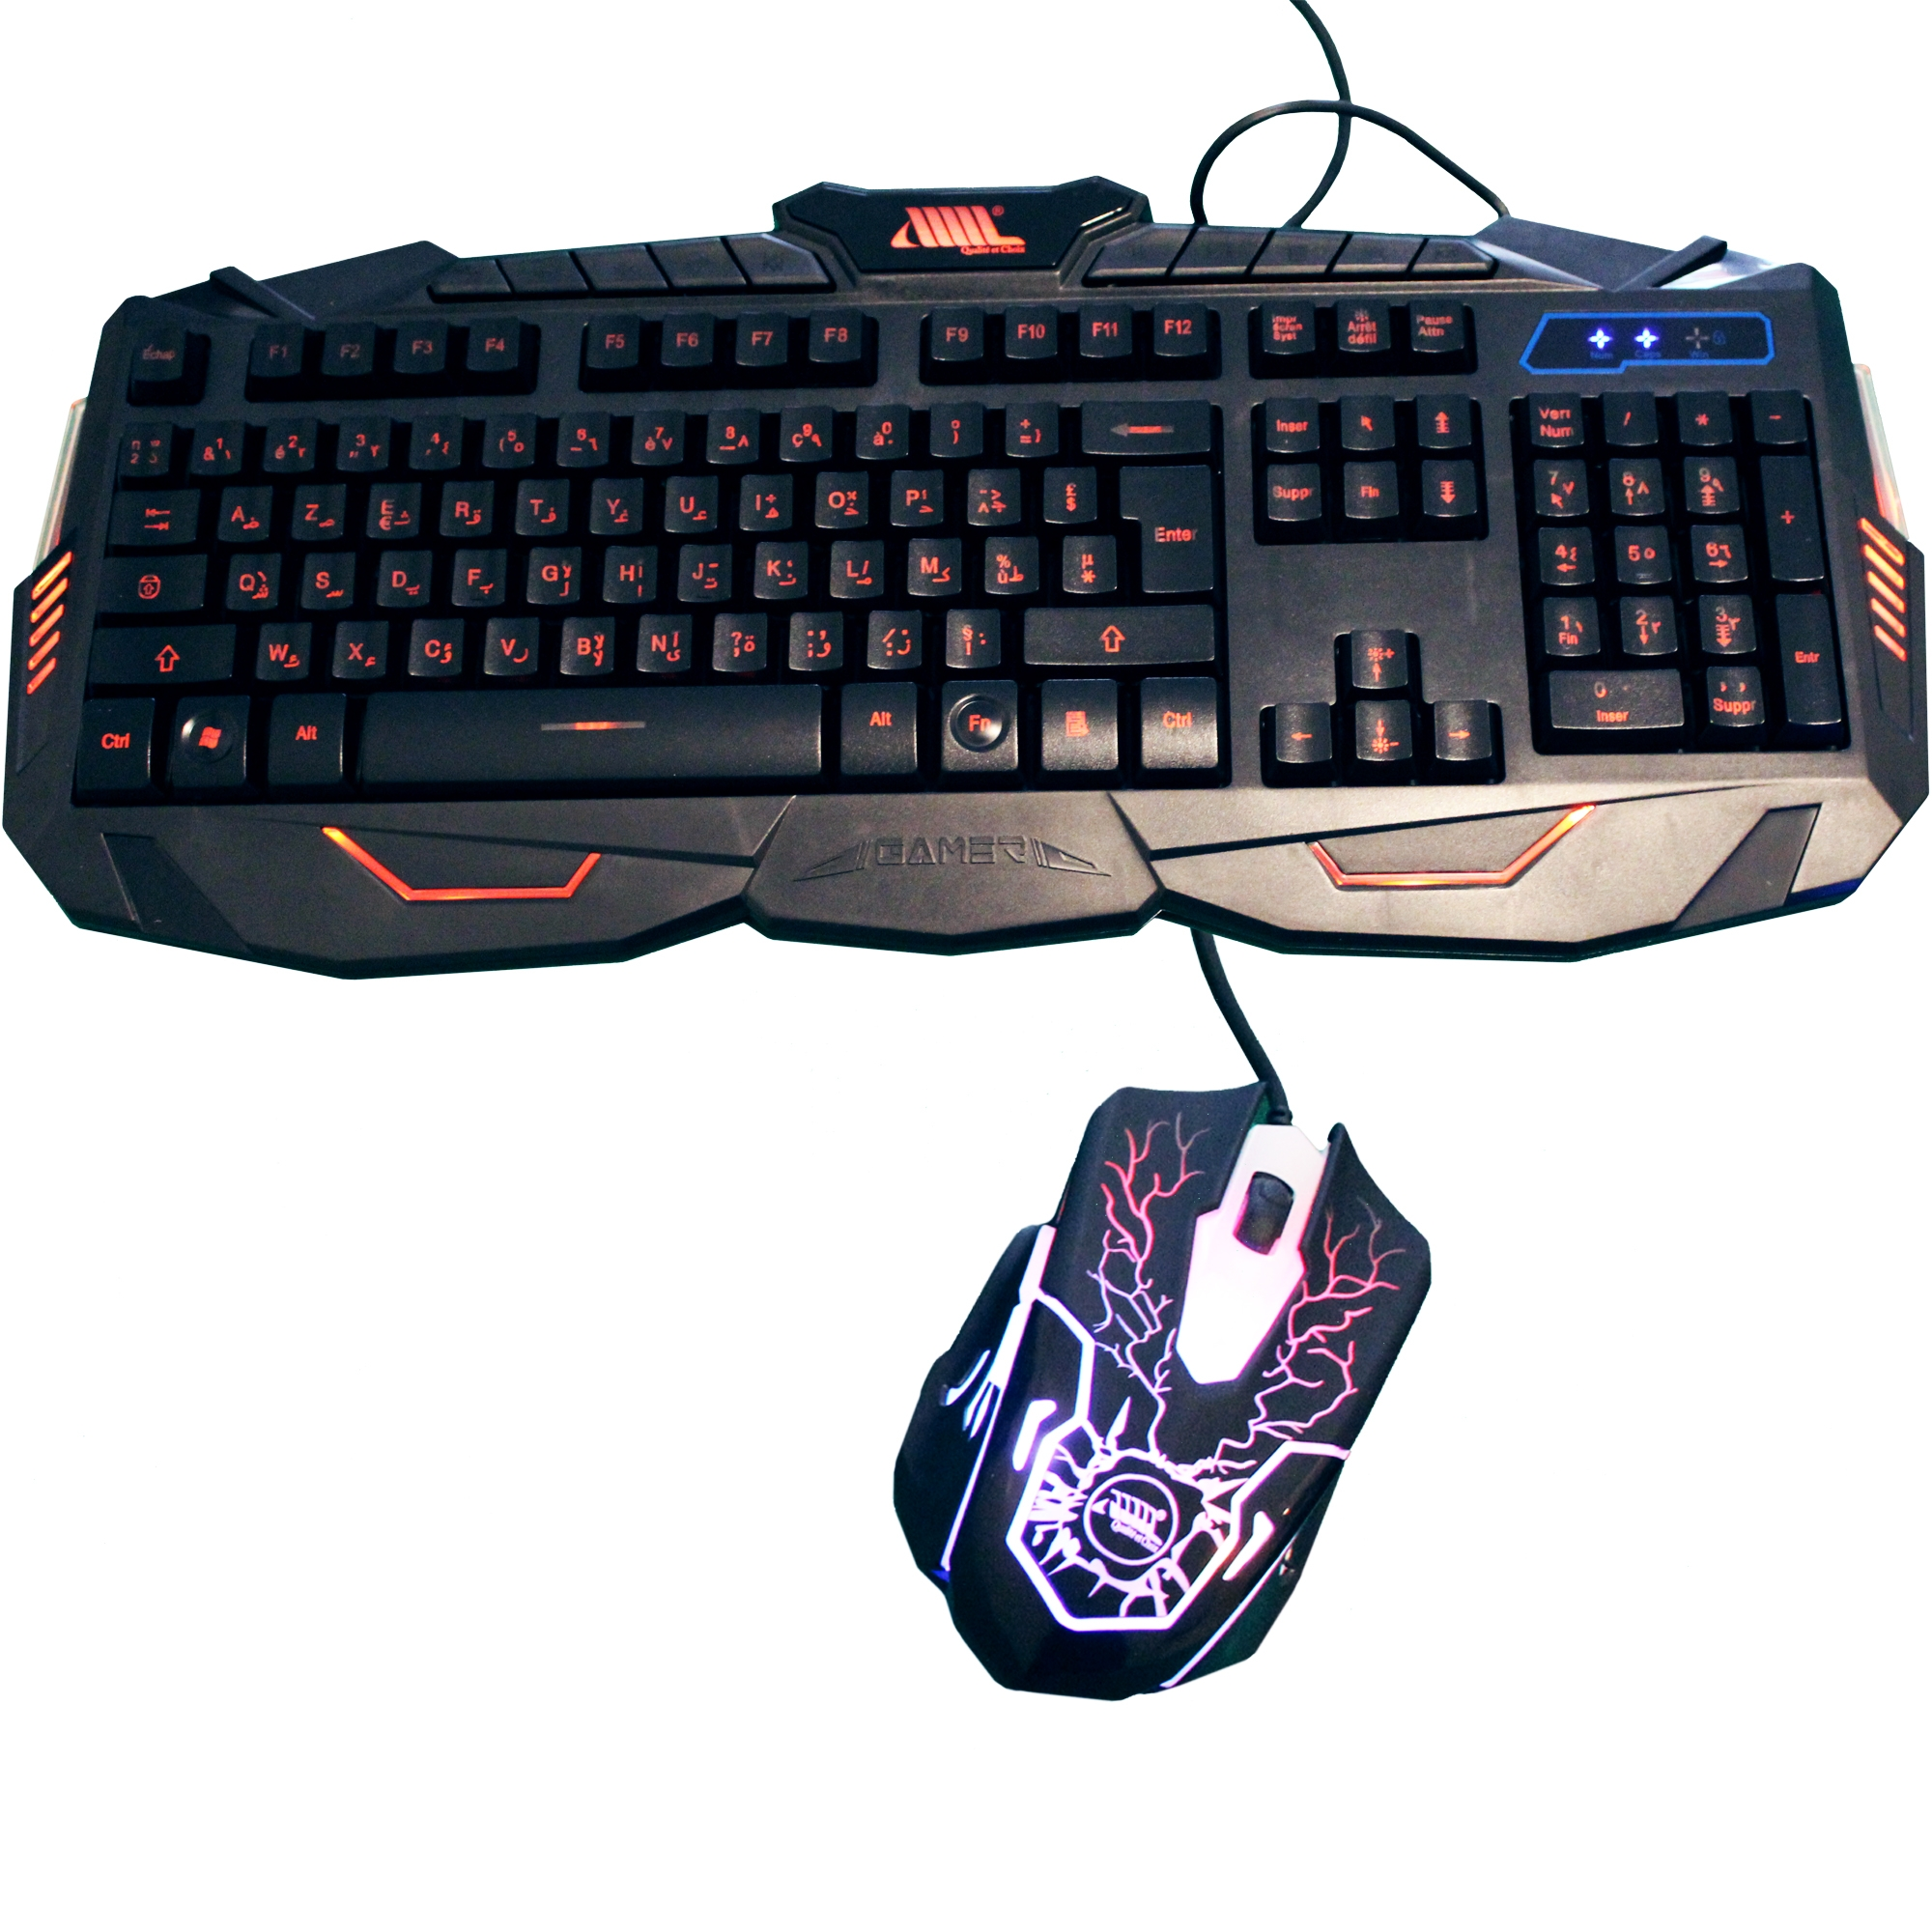 Wired backlighting keyboard and mouse combo